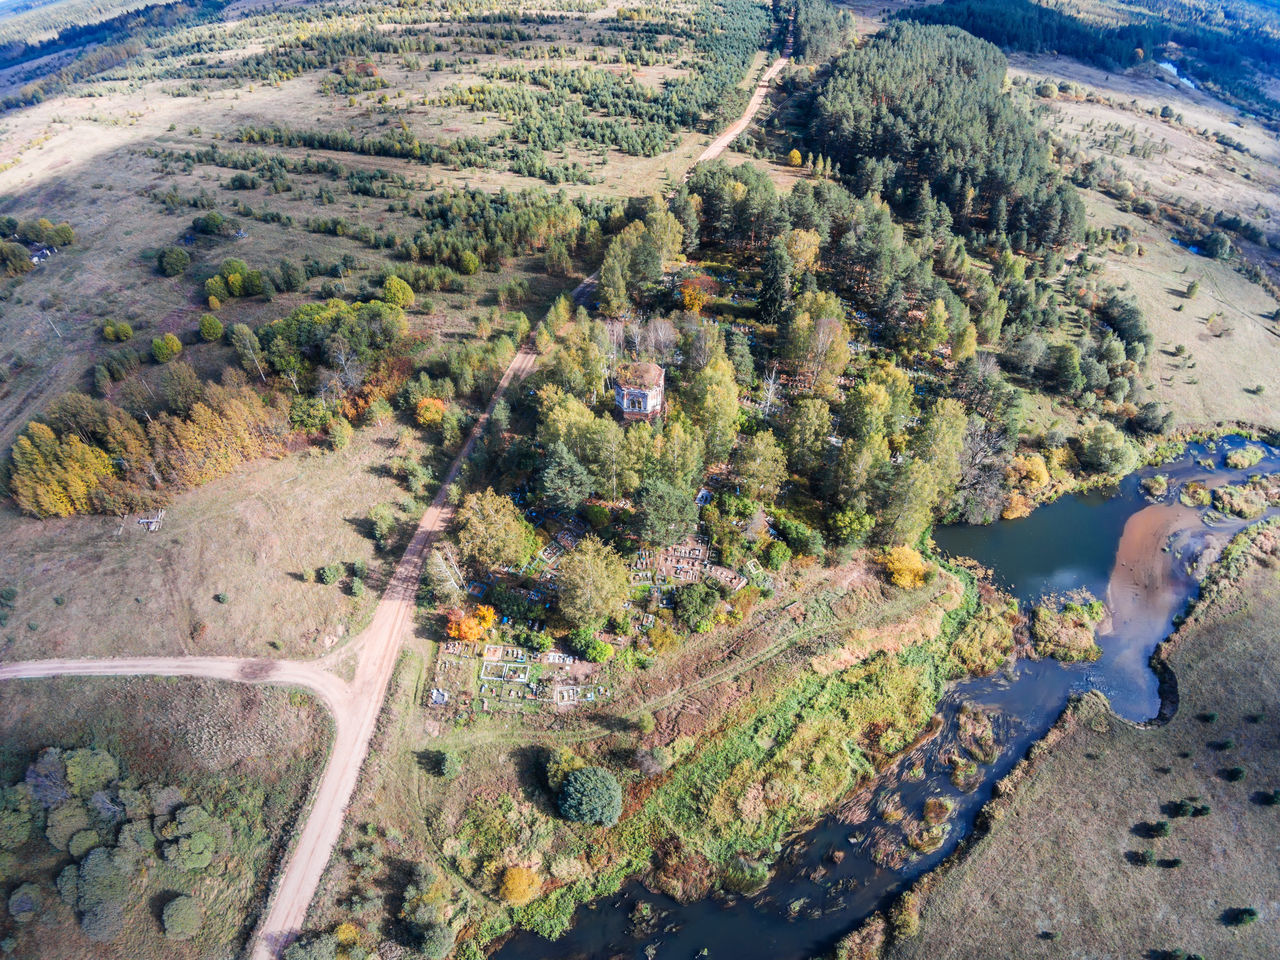 """Aerial view of an abandoned church and cemetery near the river Volchina. From the series """"Flying in the hamlet Lunacharsky."""" A Bird's Eye View Abandoned Abandoned Church Aerial View Beauty In Nature Day Drone  Farm Green Color Growth High Angle View Nature No People Outdoors River Road Rural Top Perspective Tranquility Tree"""